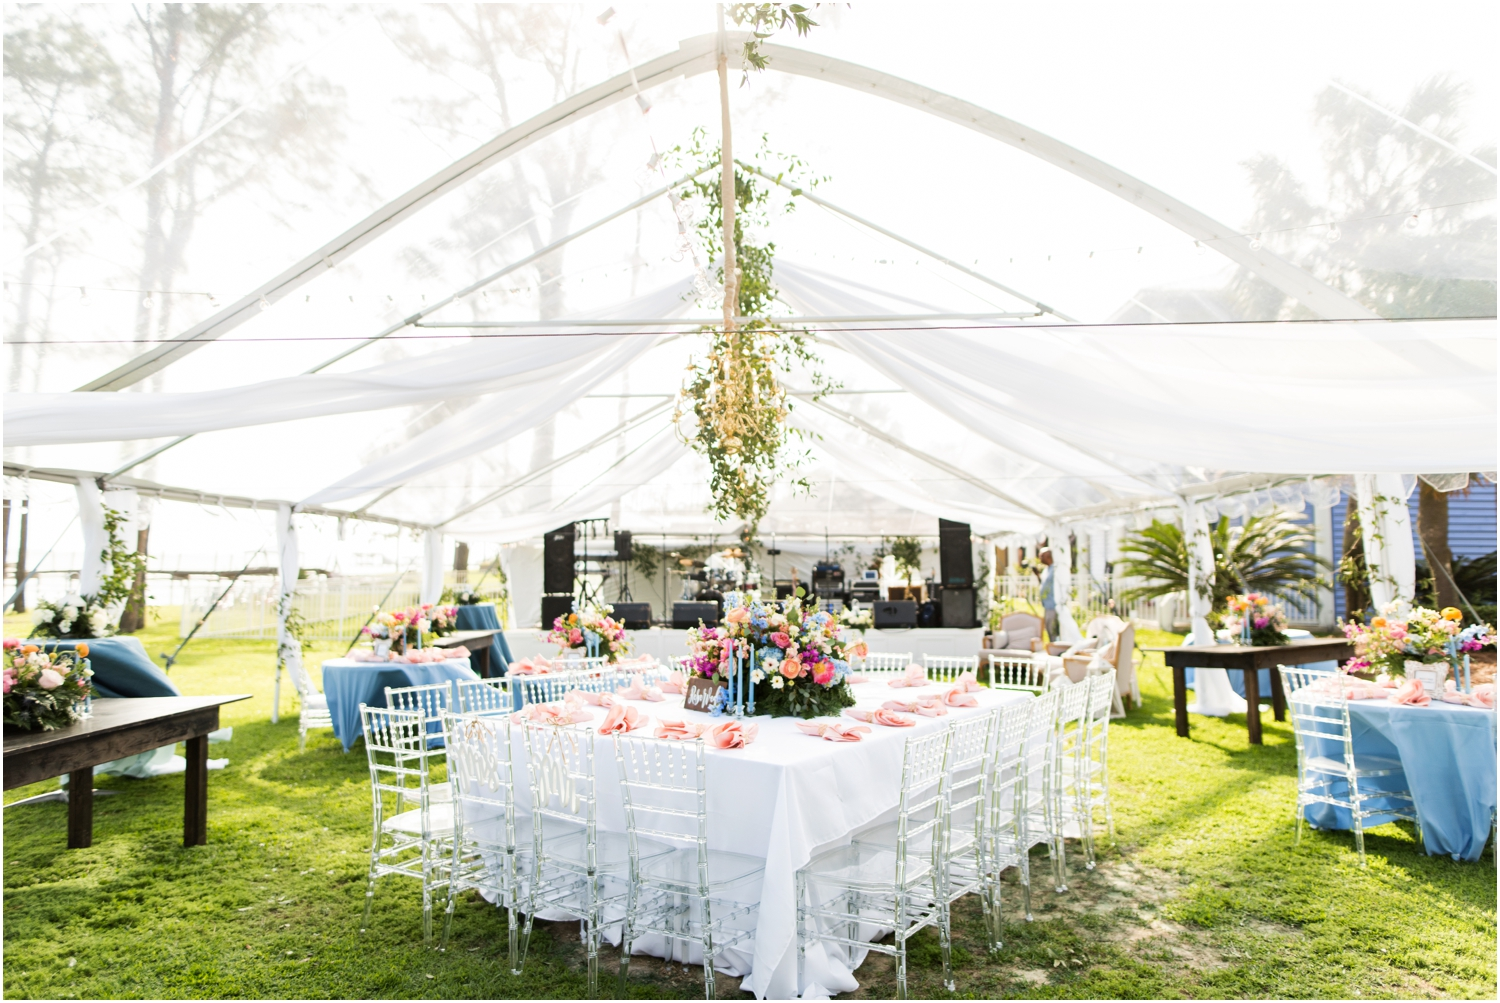 Gulf Shores Orange Beach Alabama Family Home on the Water Wedding Photographer reception details supposey